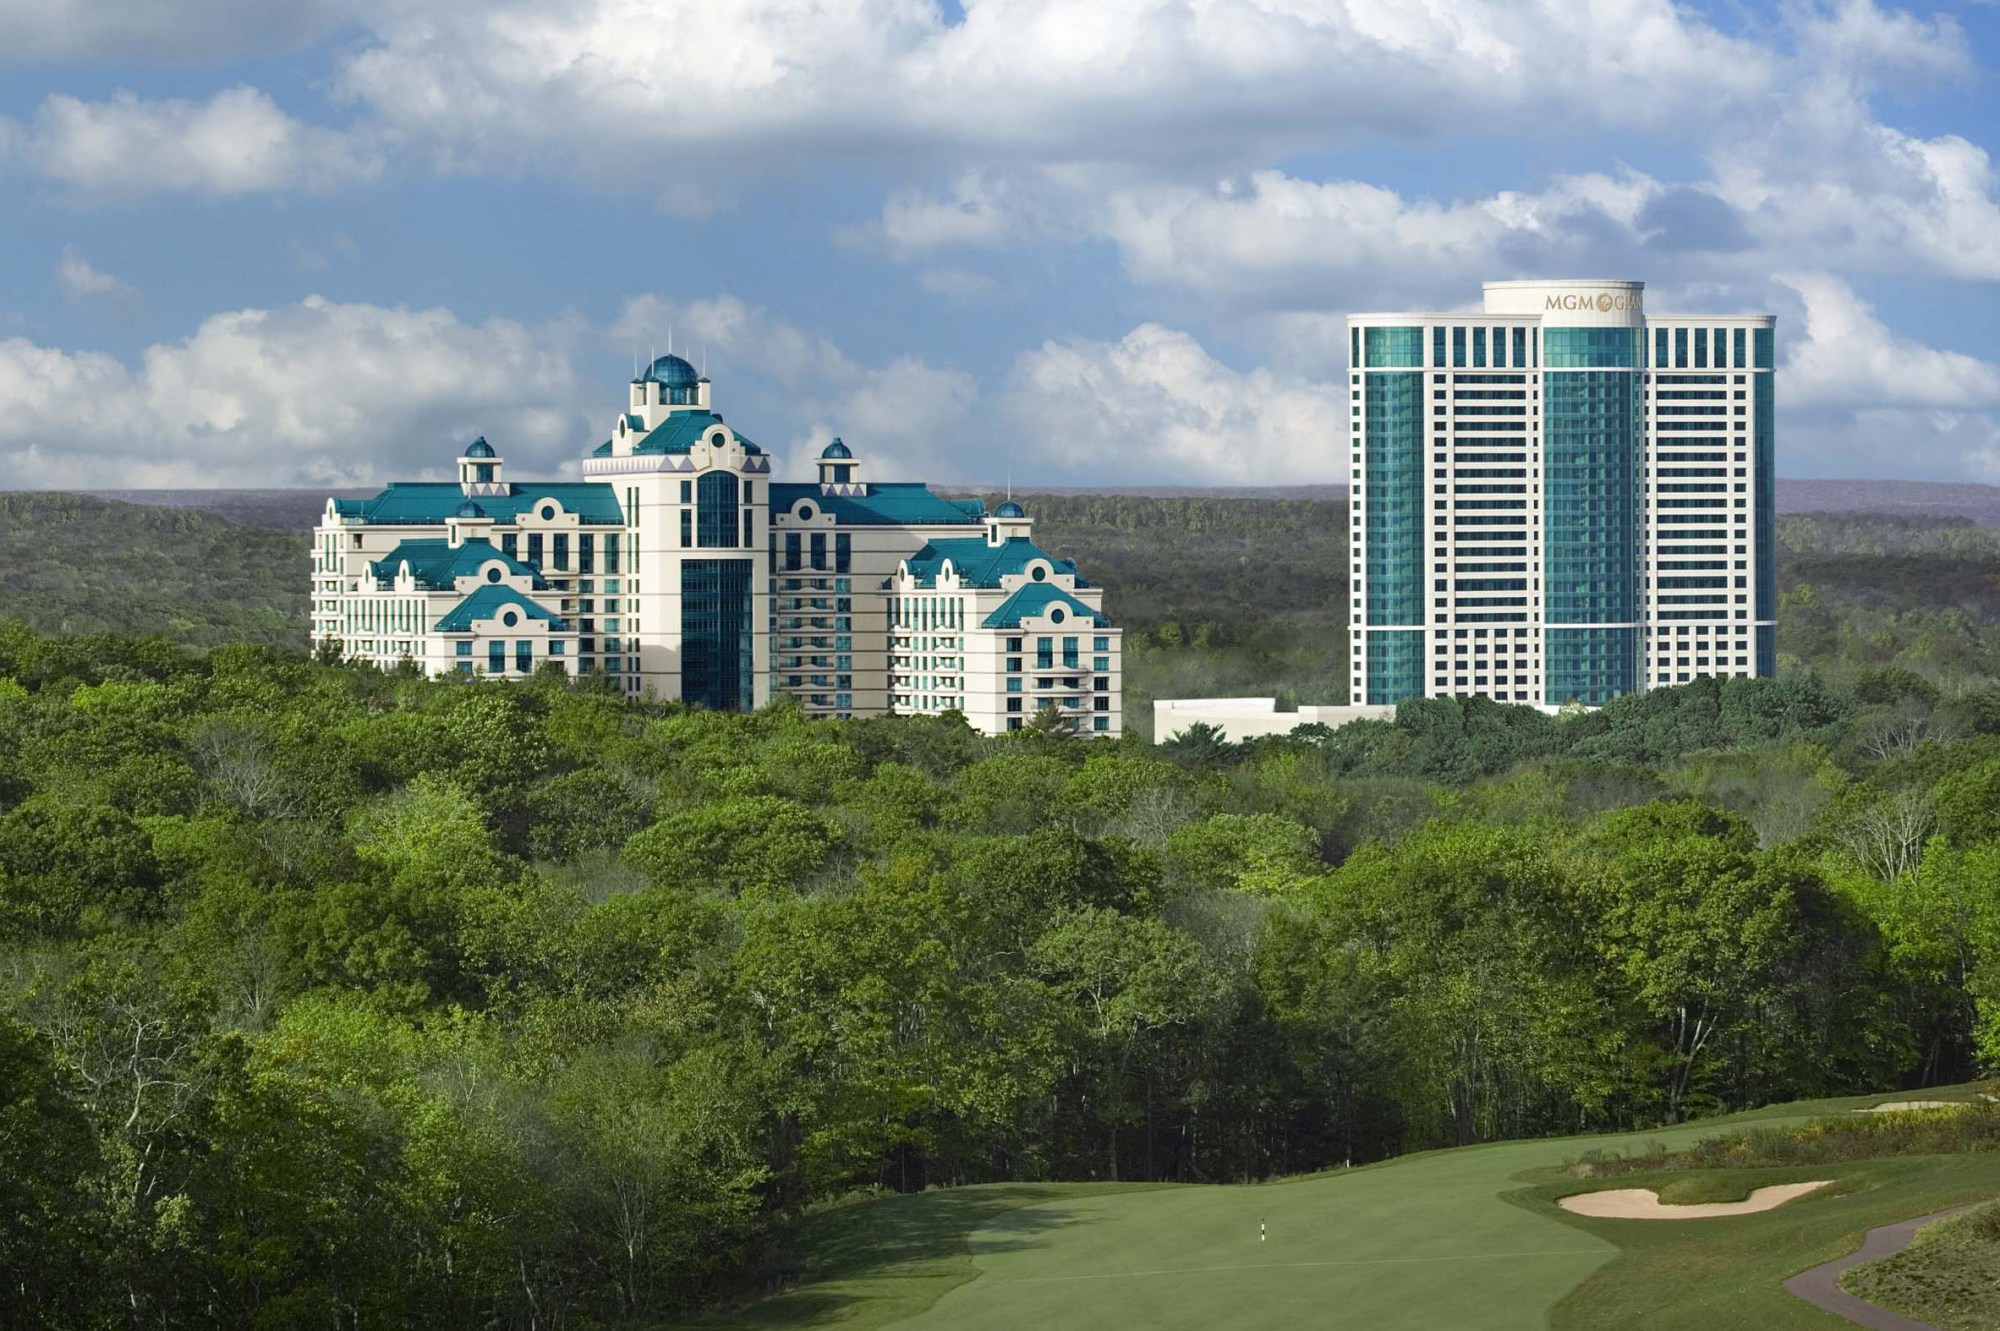 Foxwoods casino CEO dies unexpectedly  Fox Business